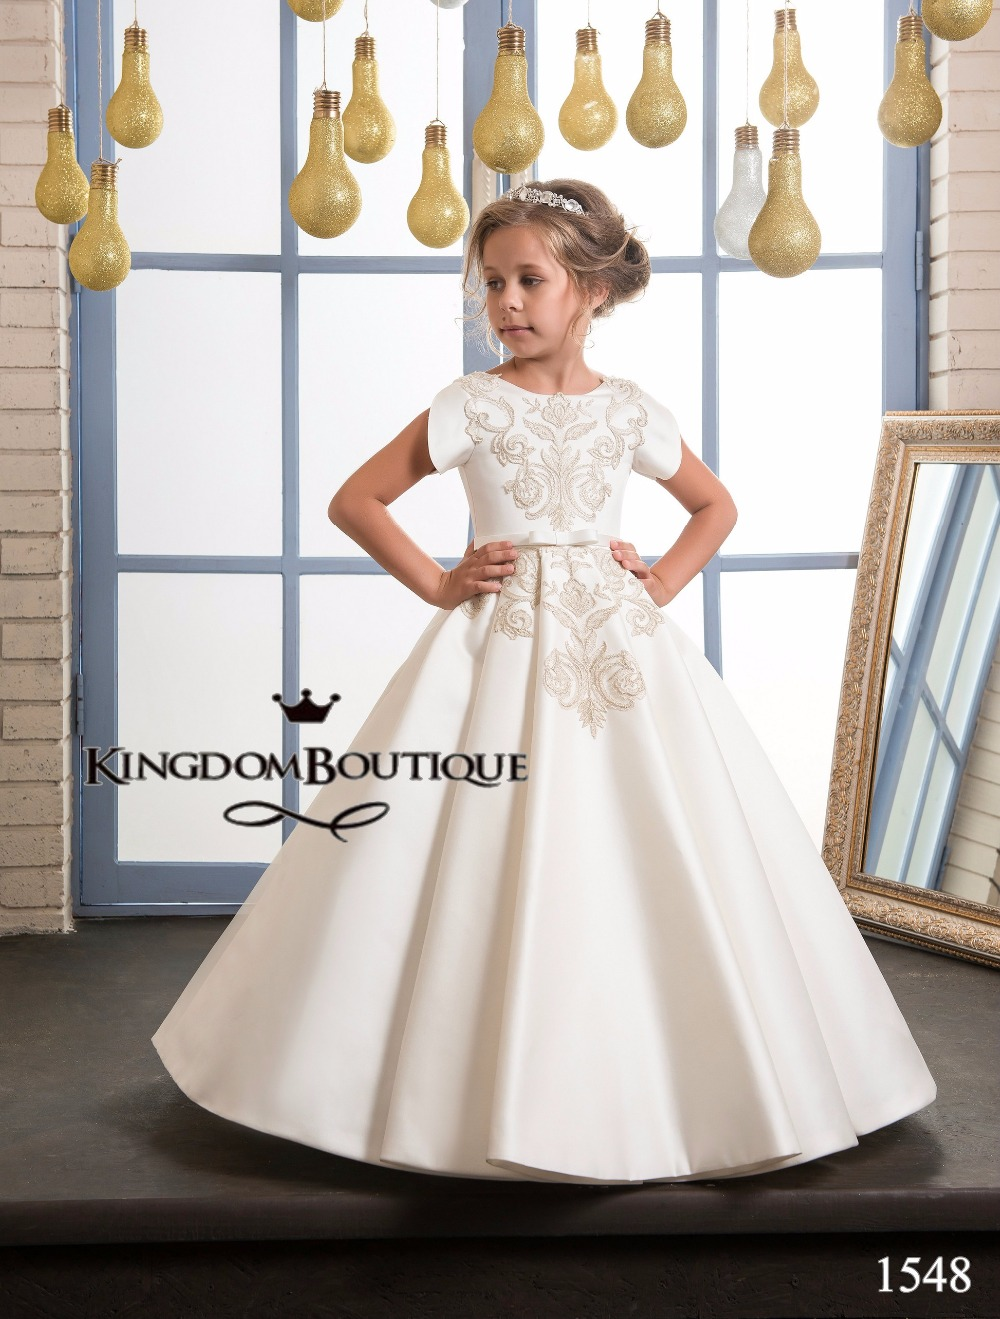 Christmas wedding dress zipper - Fancy Flower Girl Dress Gold Appliques Formal Christmas Ball Gowns Satin Zipper V Back Pageant Dresses